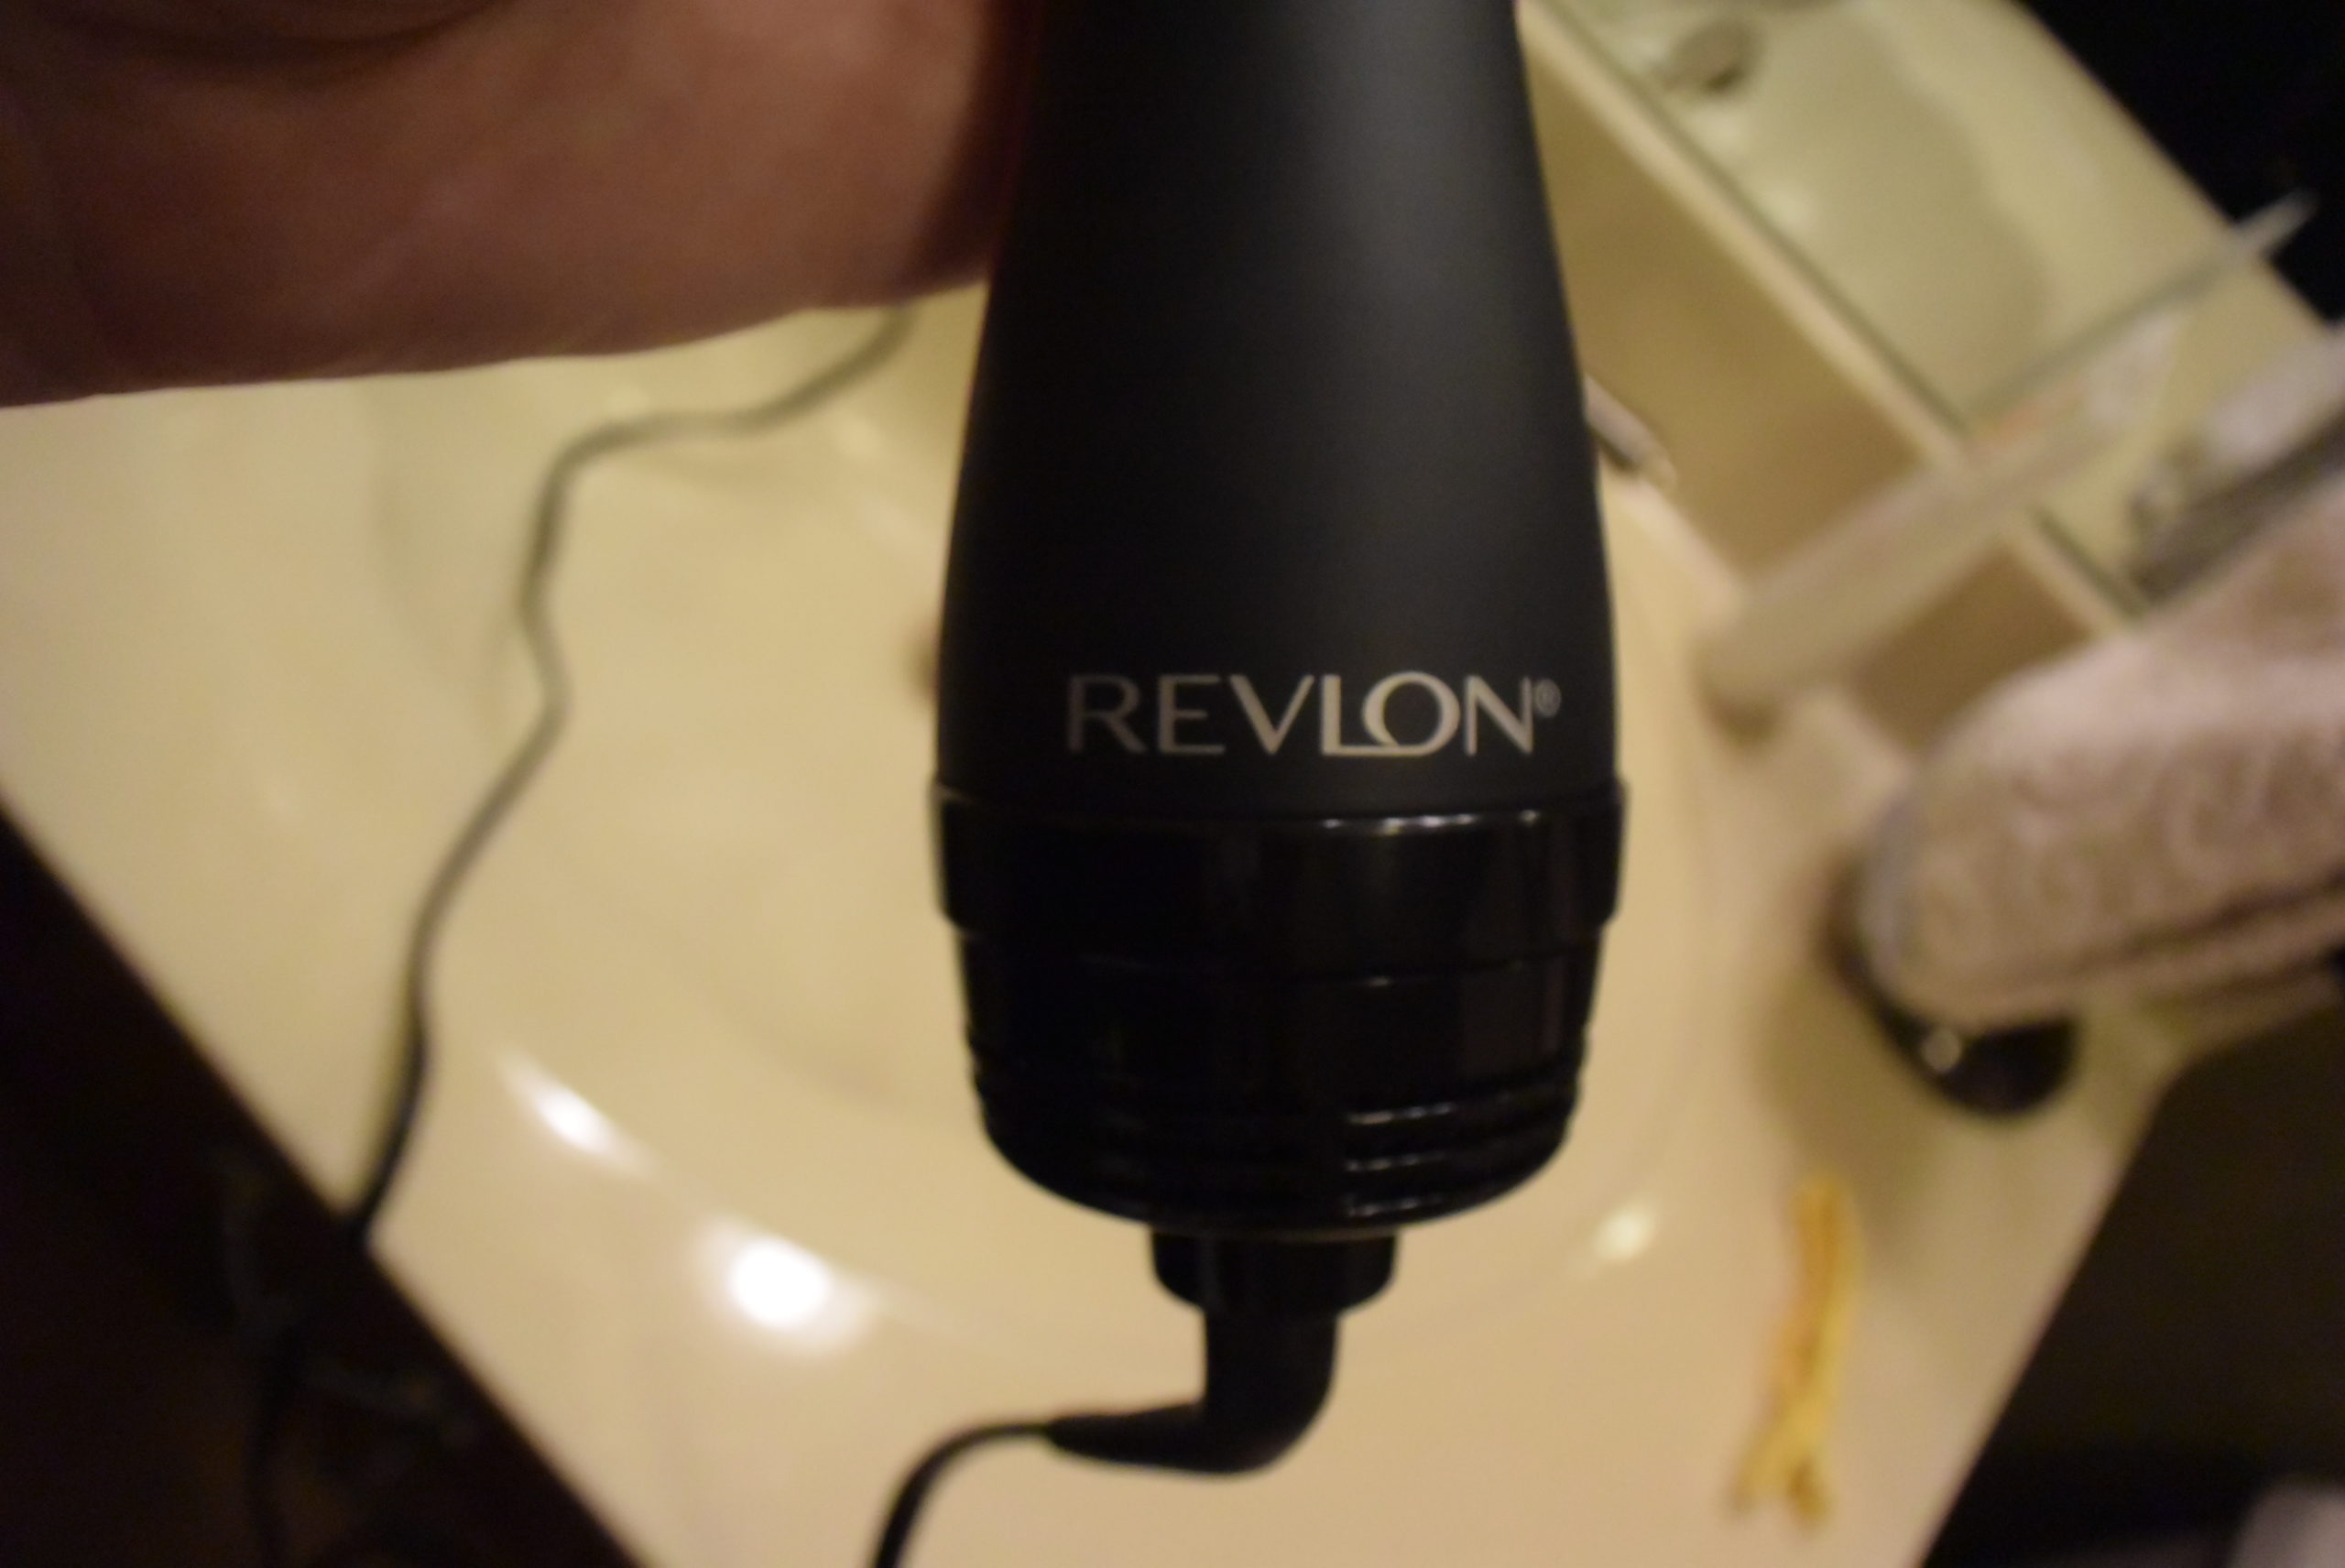 Revlon One Step Hair Dryer and Volumizer Review